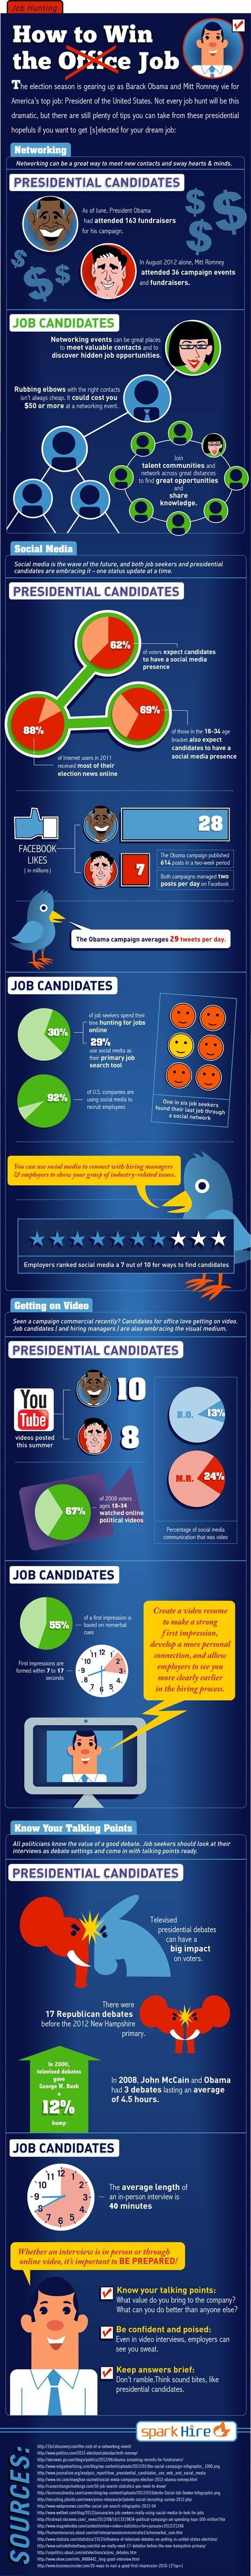 How To Treat Your Job Hunt Like The Presidential Campaign [INFOGRAPHIC] | Managing people not cogs in a machine | Scoop.it